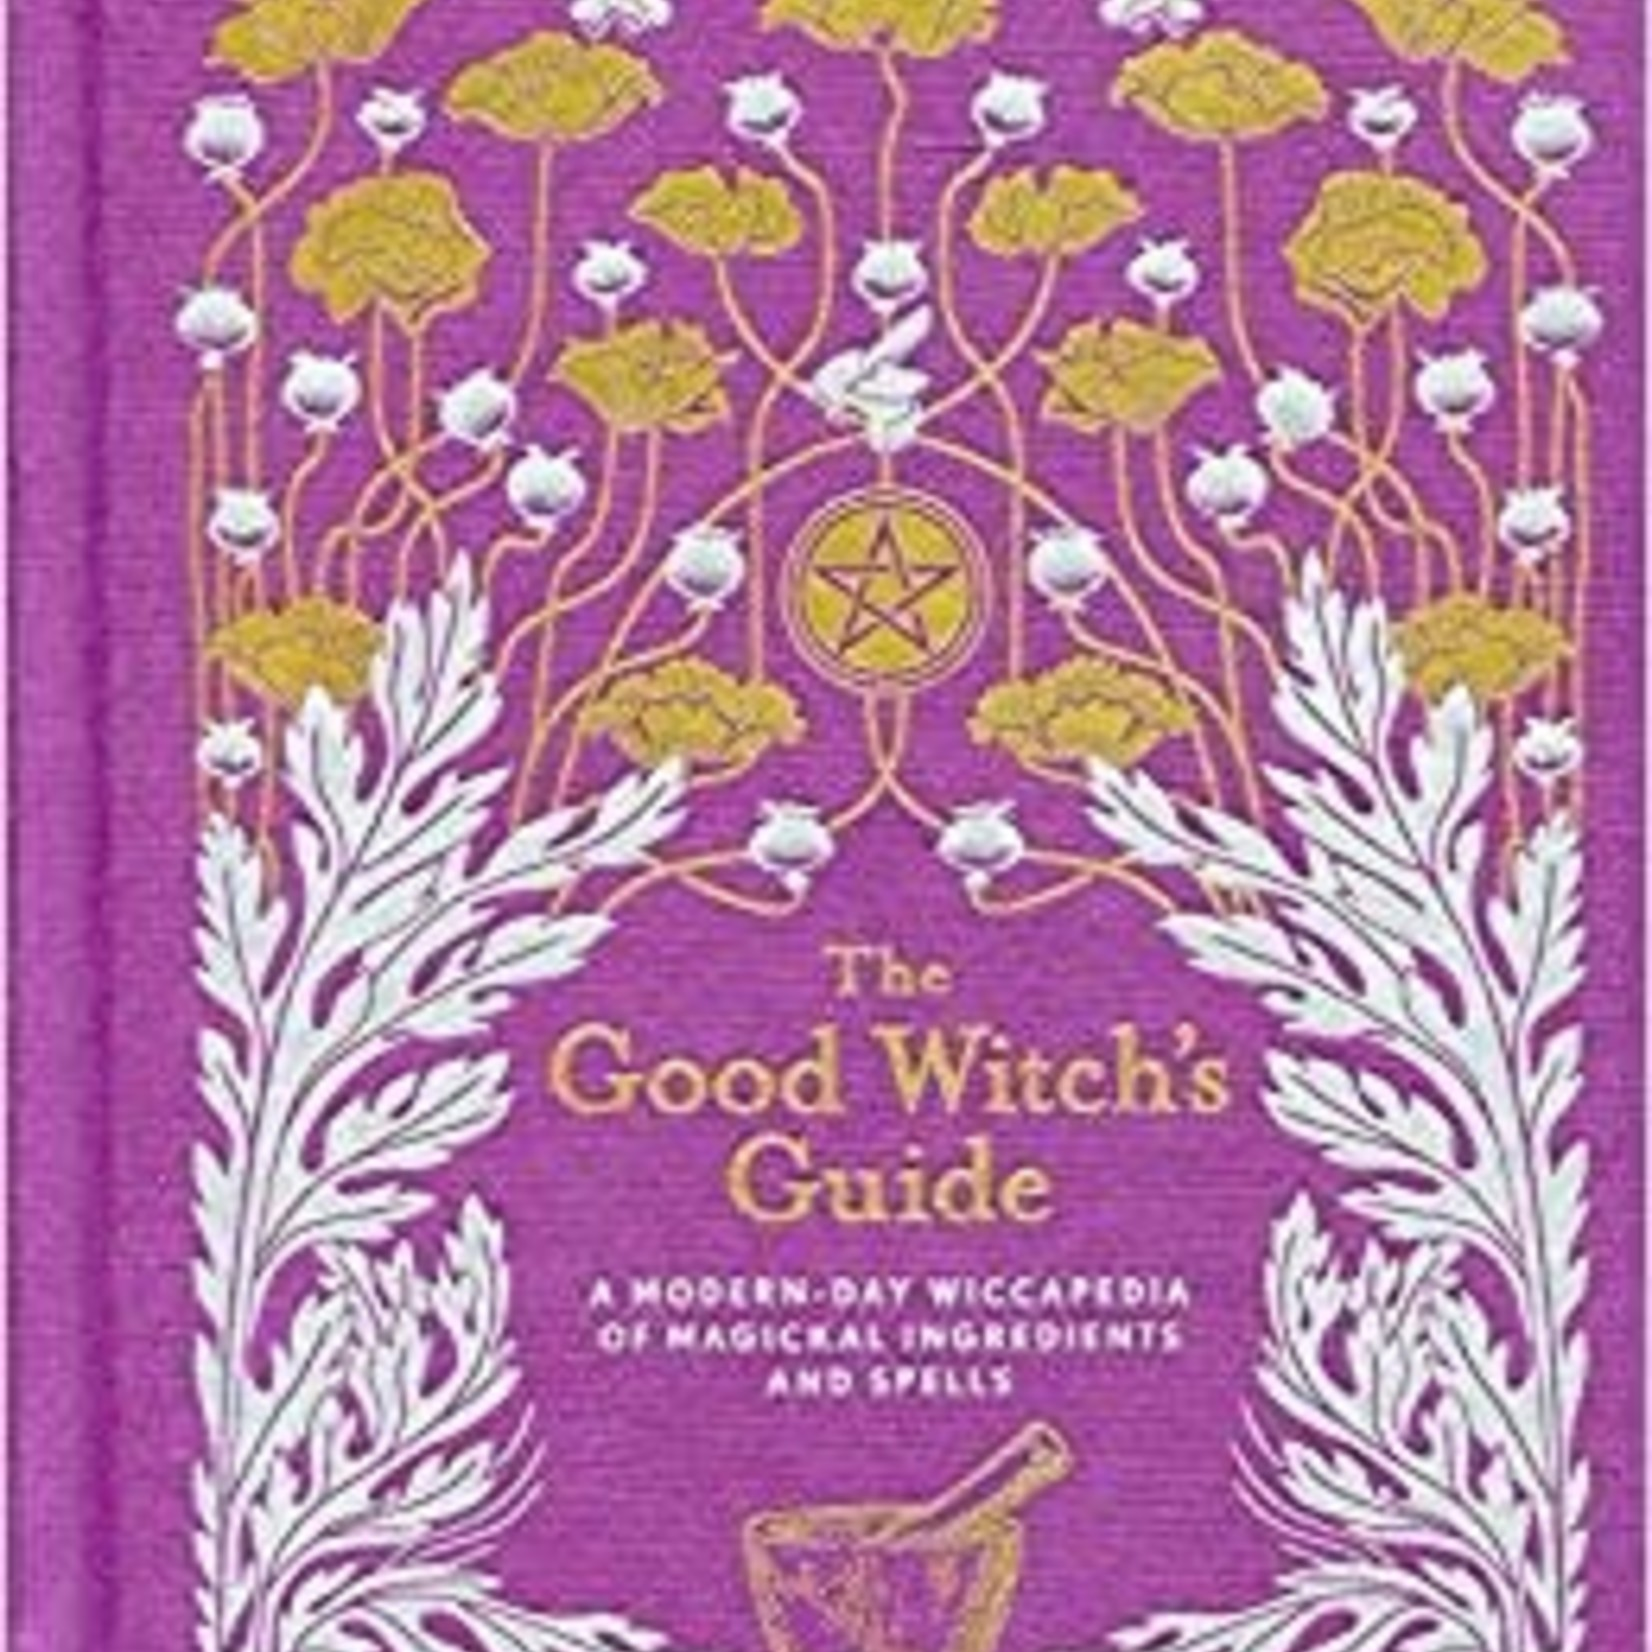 The Good Witch's Guide - A modern day wiccapedia